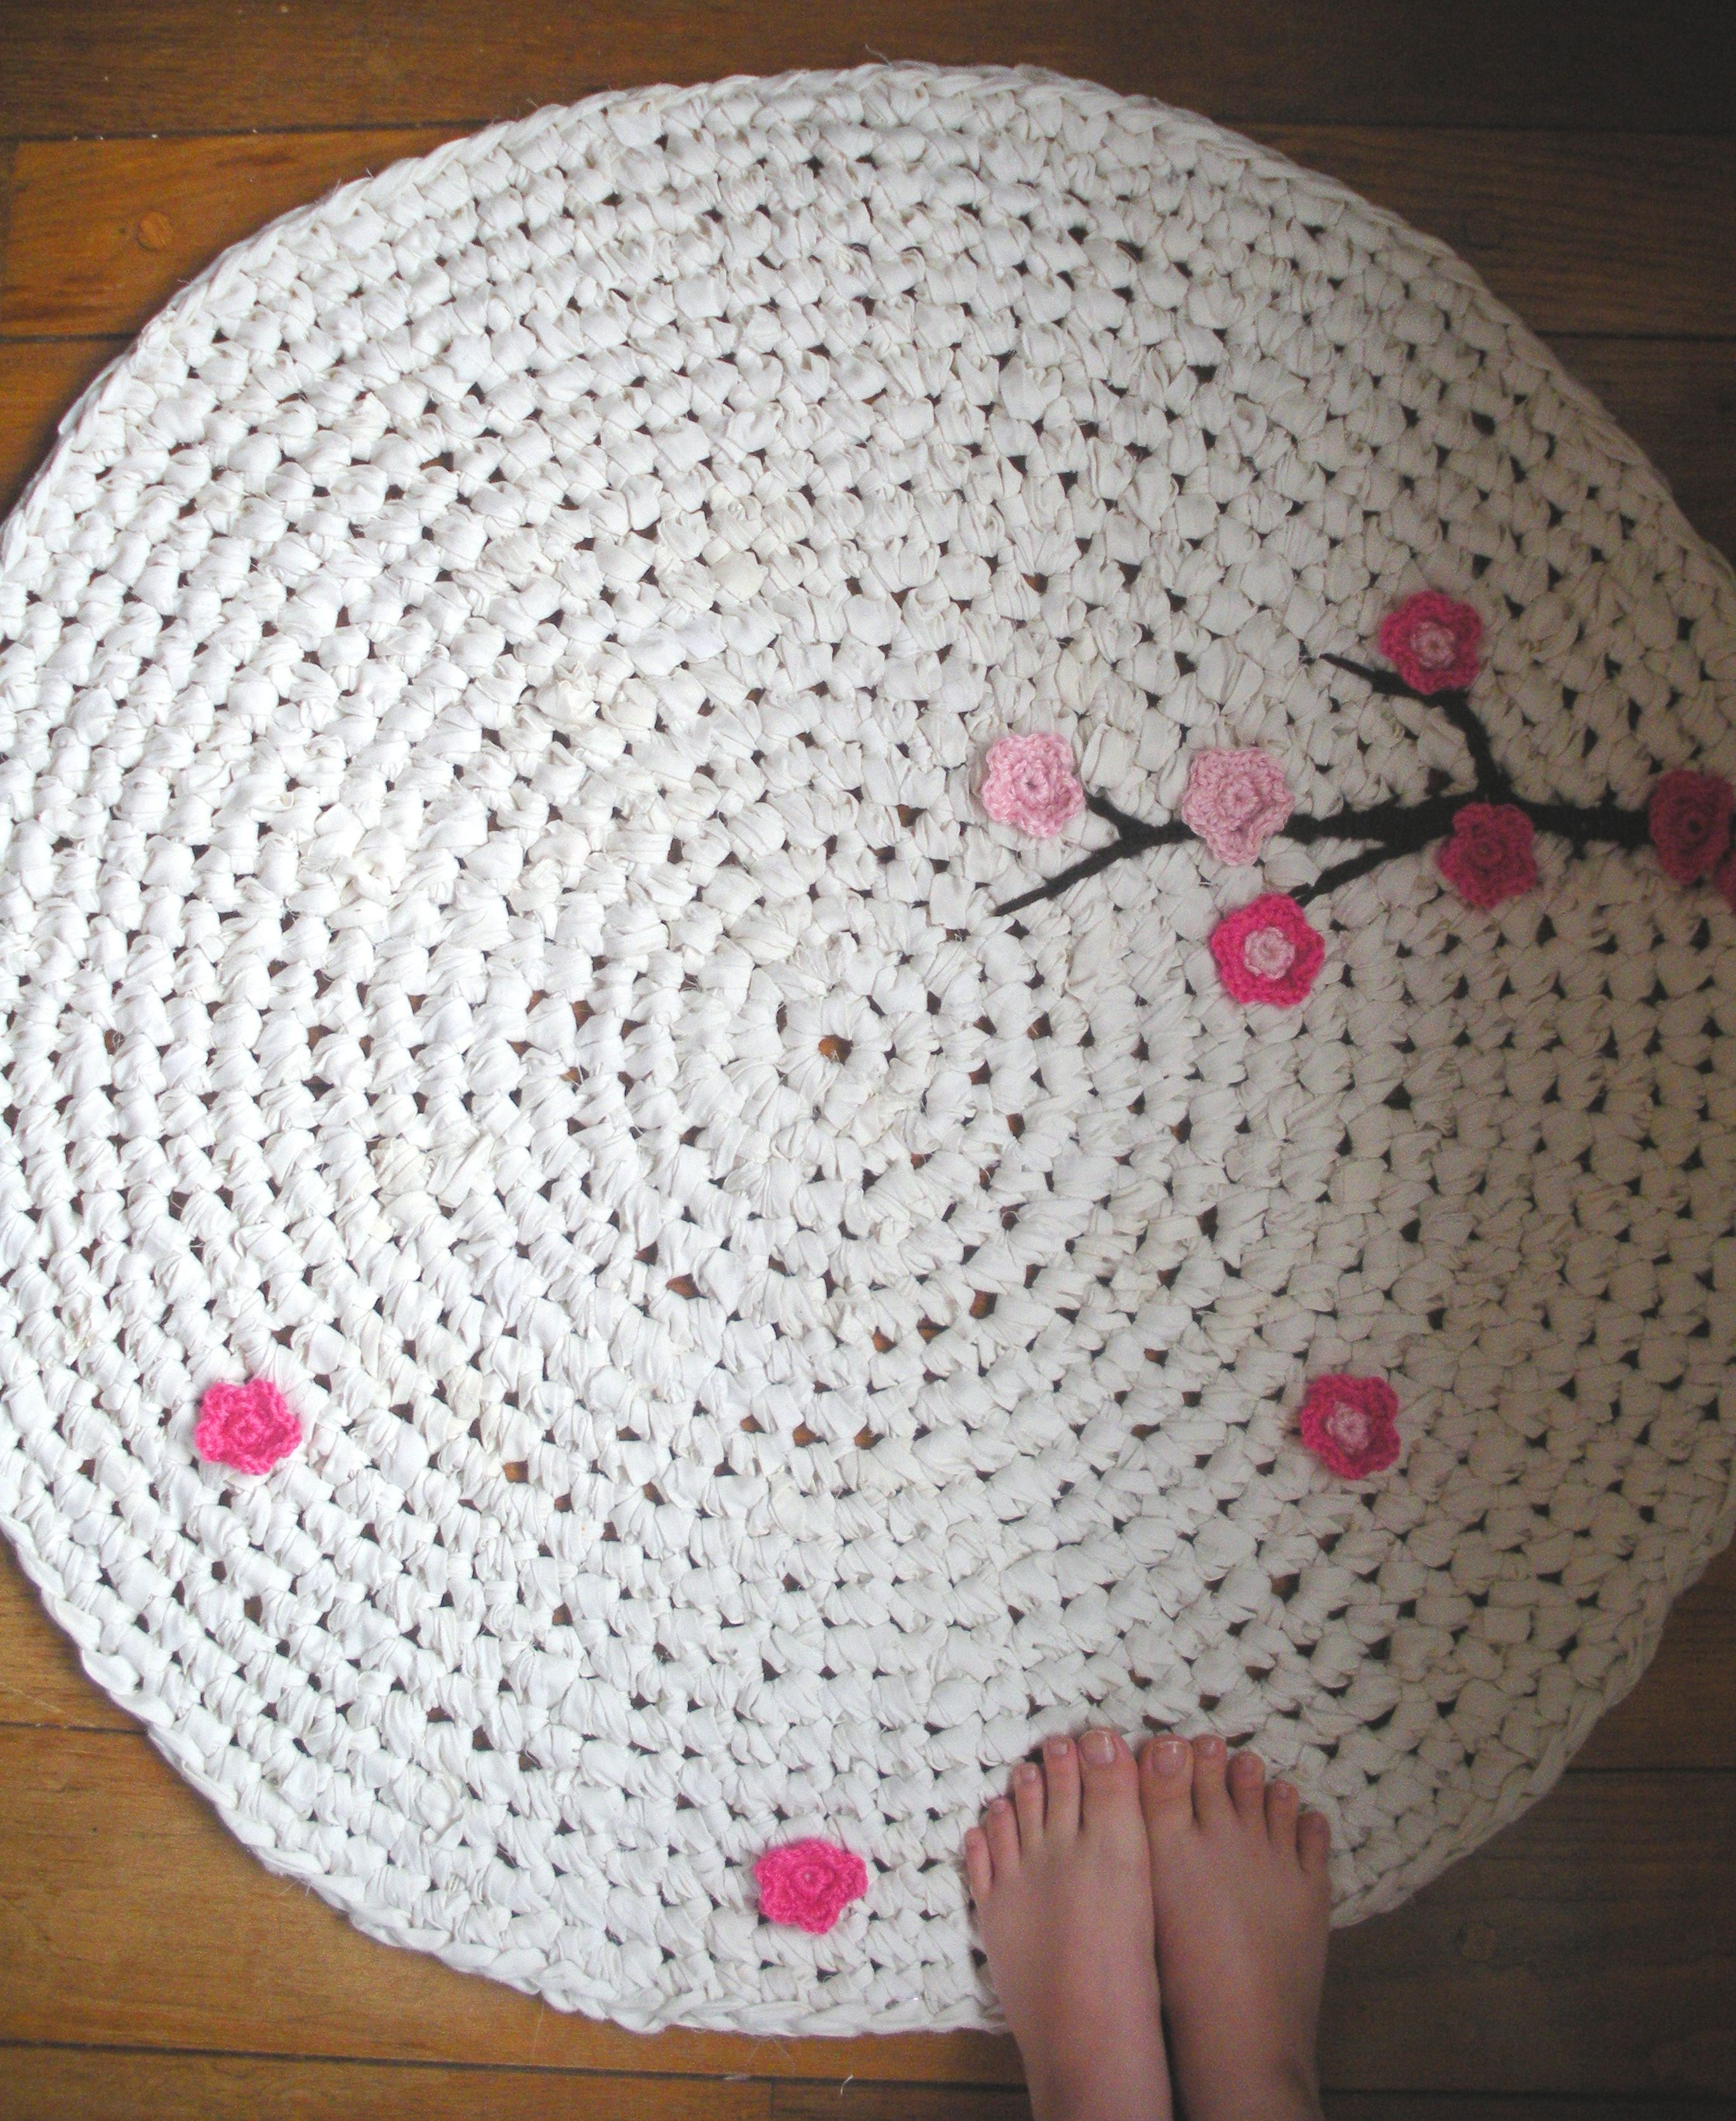 Häkelmuster Runder Teppich Sooo Going To Reverse Engineer This Crochet Rag Rug With Cherry